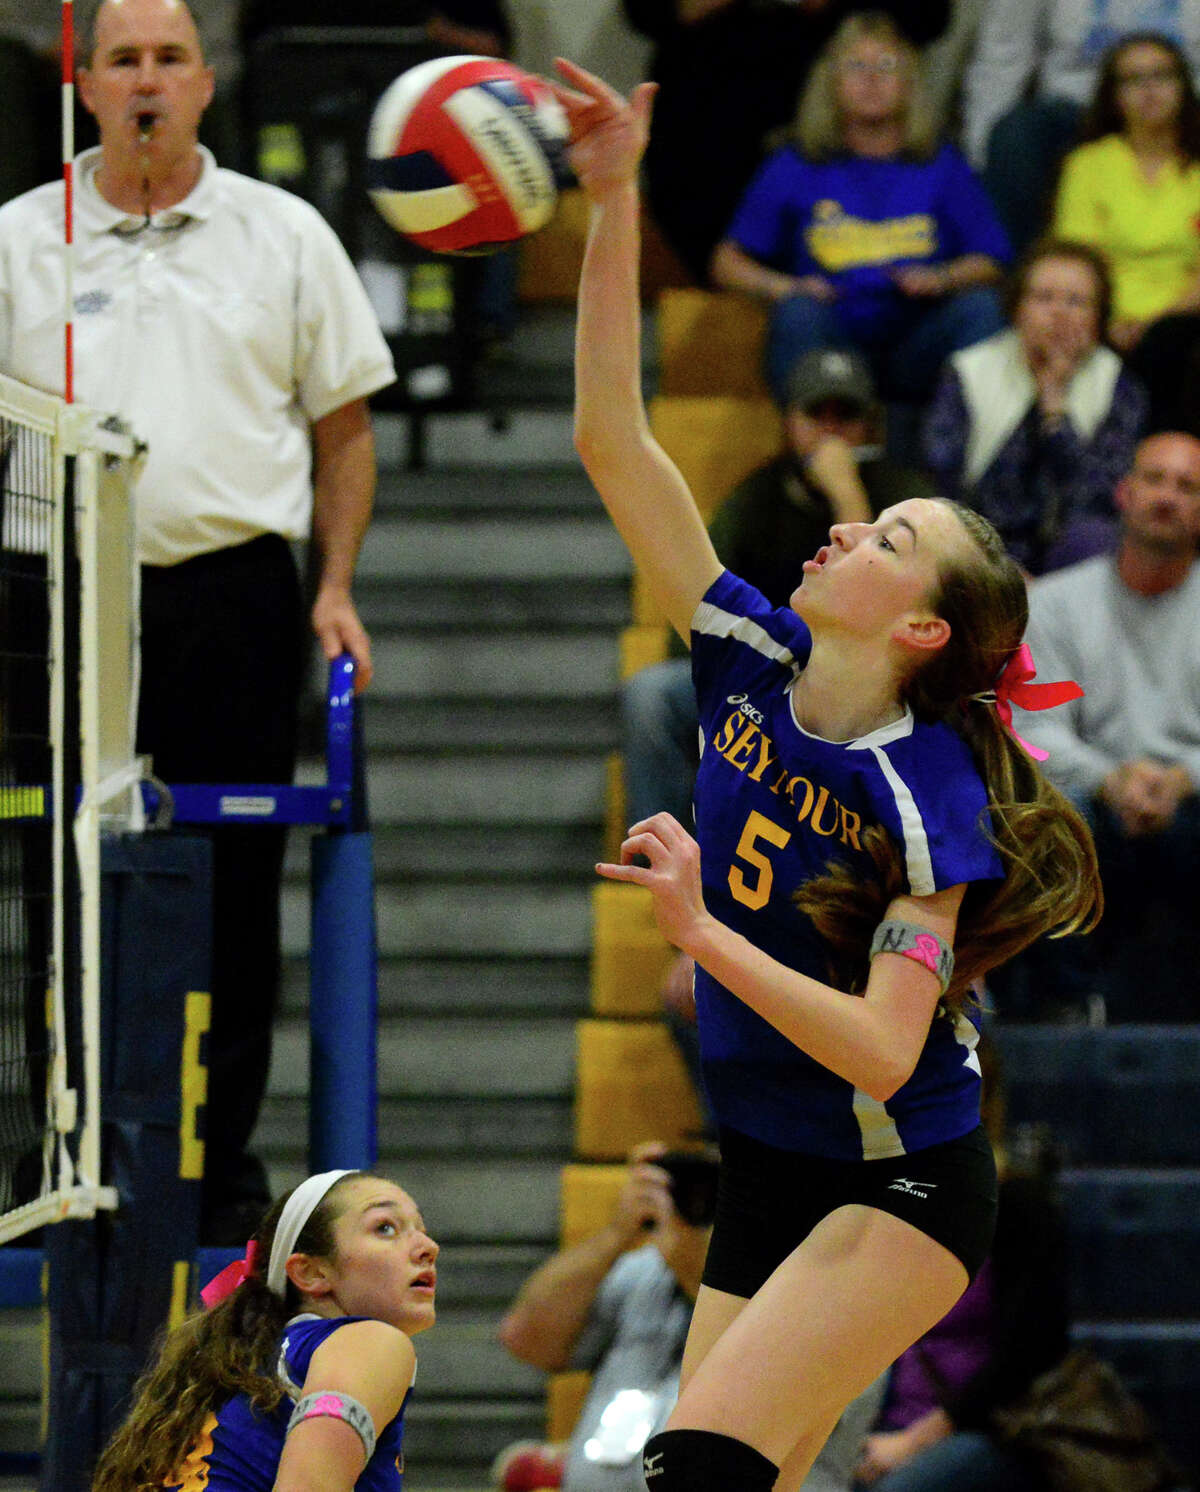 Seymour's Jillian Murphy spikes the ball, during Class S girls volleyball semifinal action against Morgan in East Haven, Conn. on Wednesday Nov. 12, 2014.